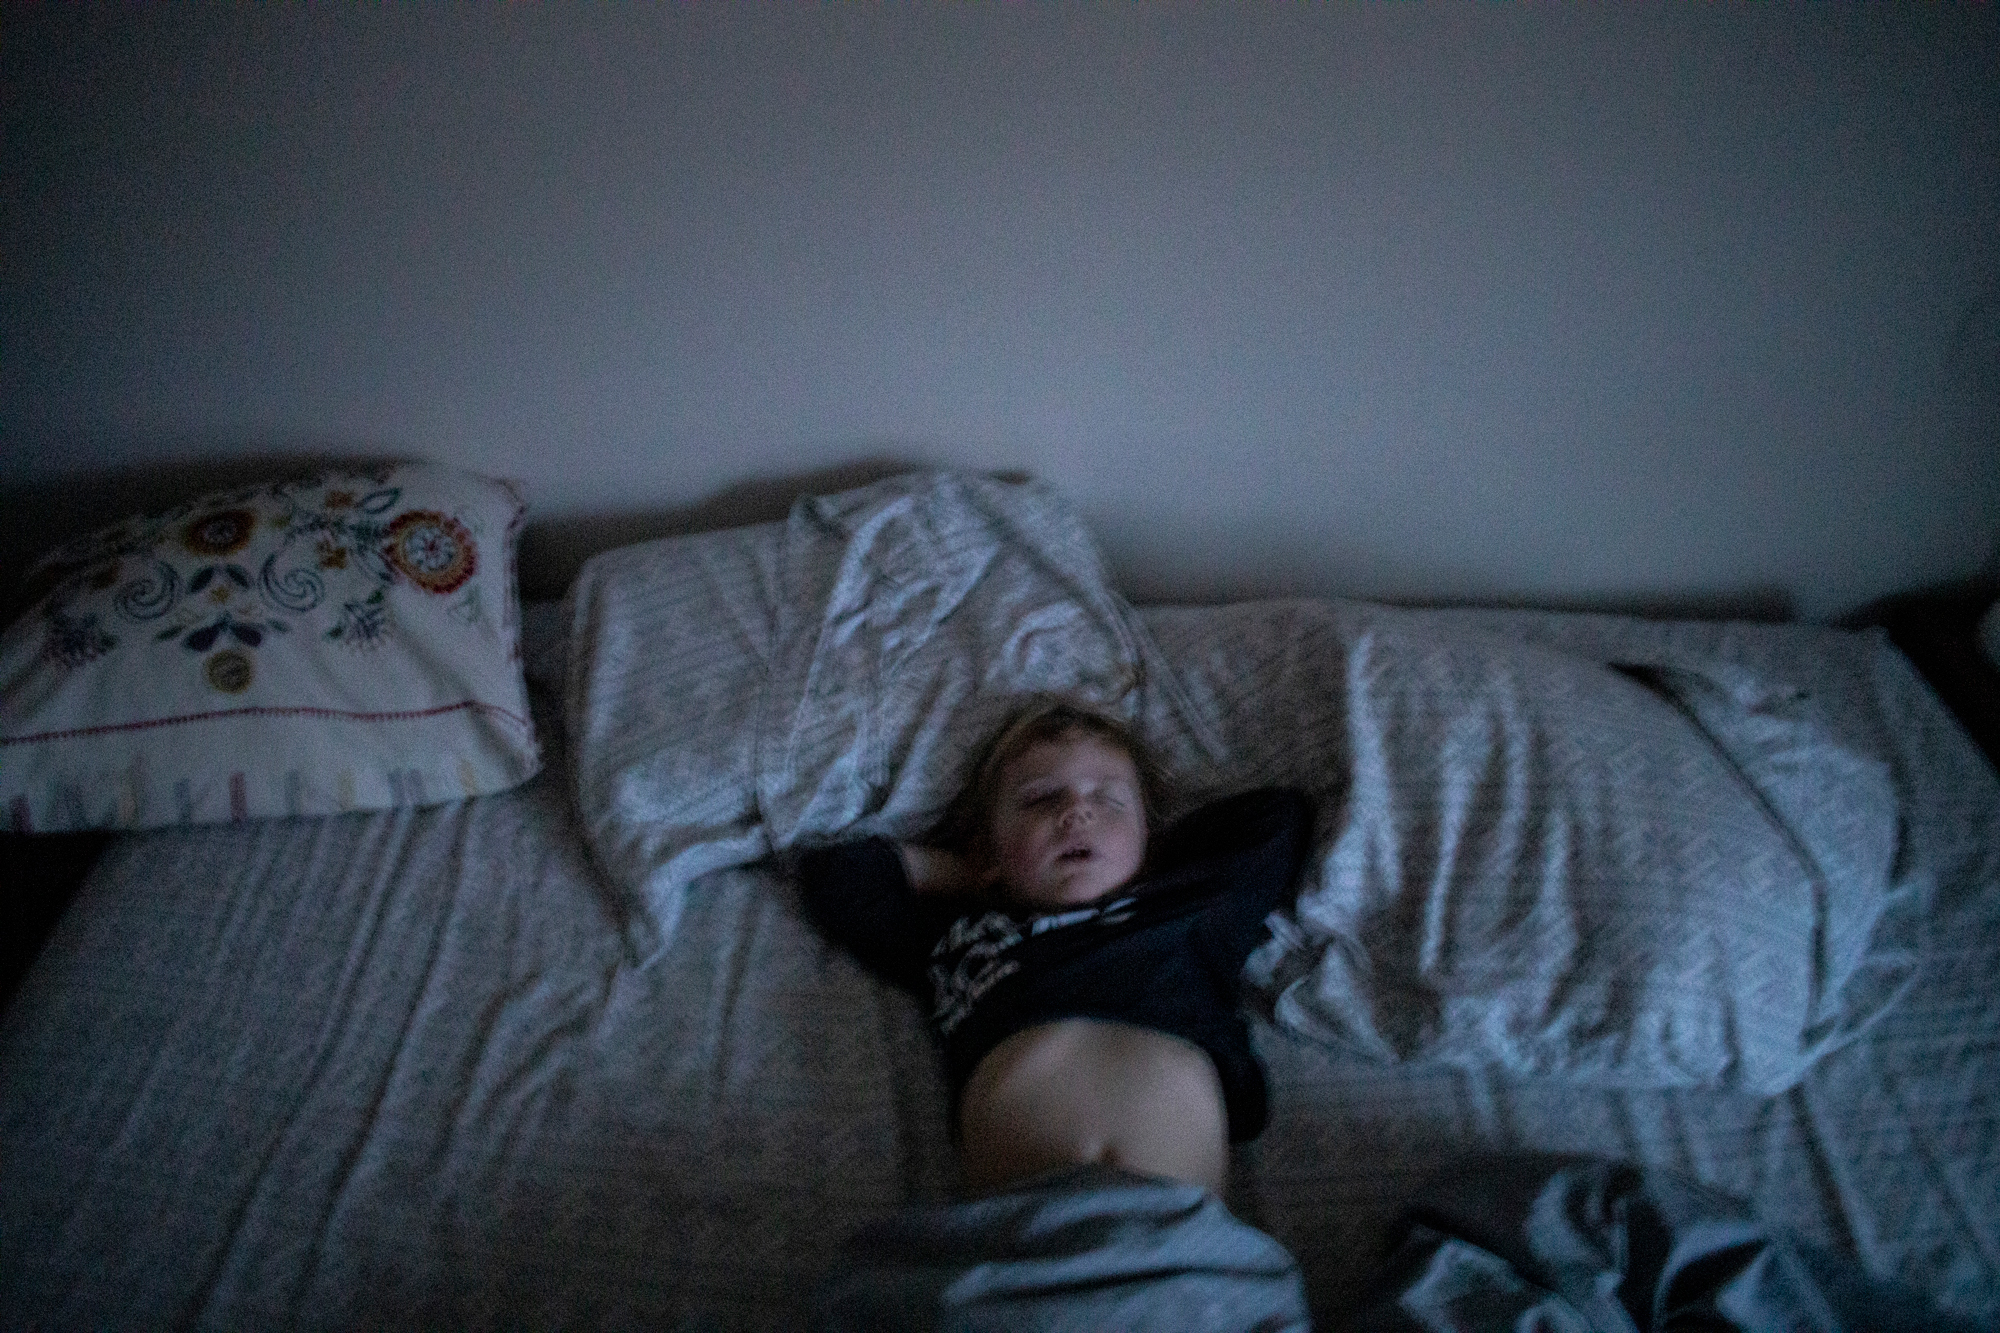 A young boy lays on his back on a bed, asleep with his arms behind his head.